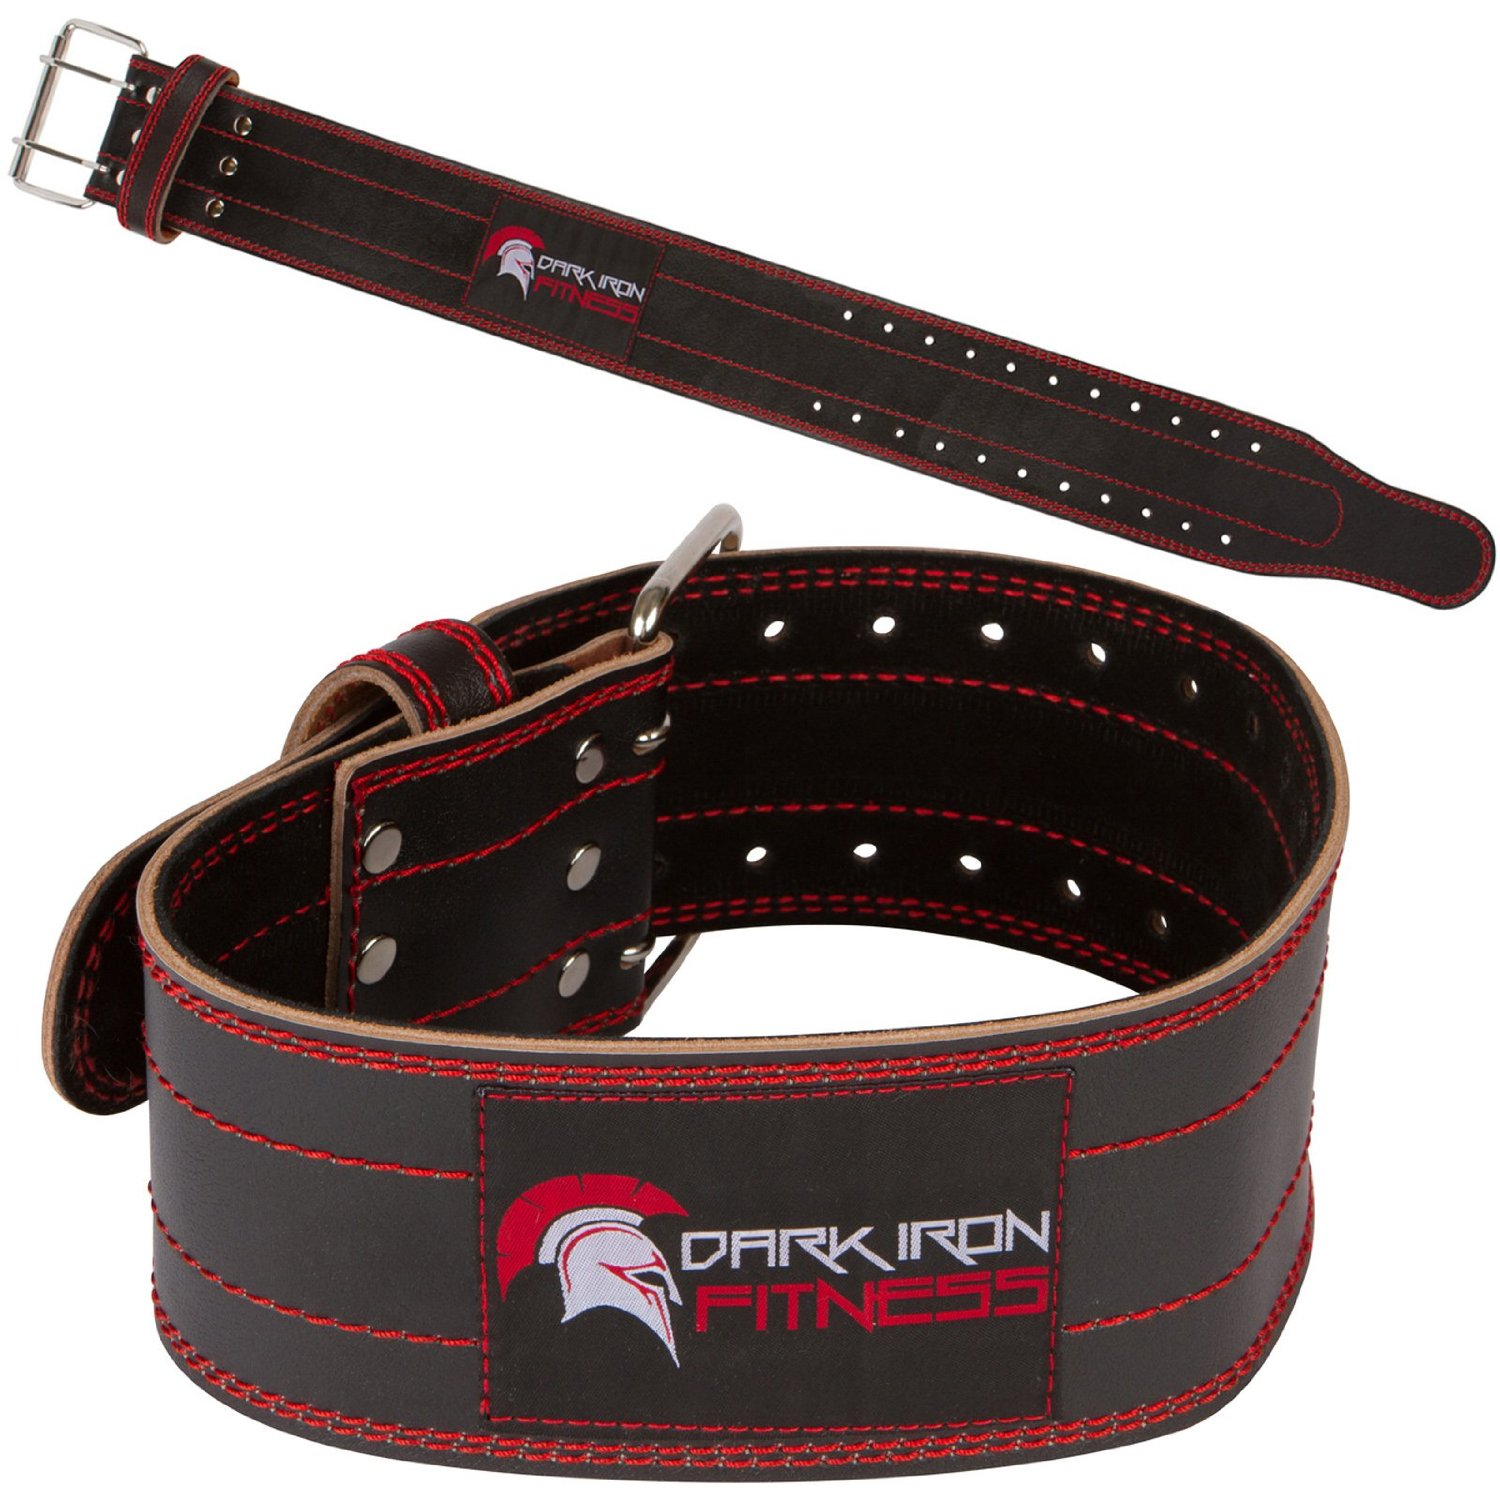 3. Leather Pro Weight lifting Belt